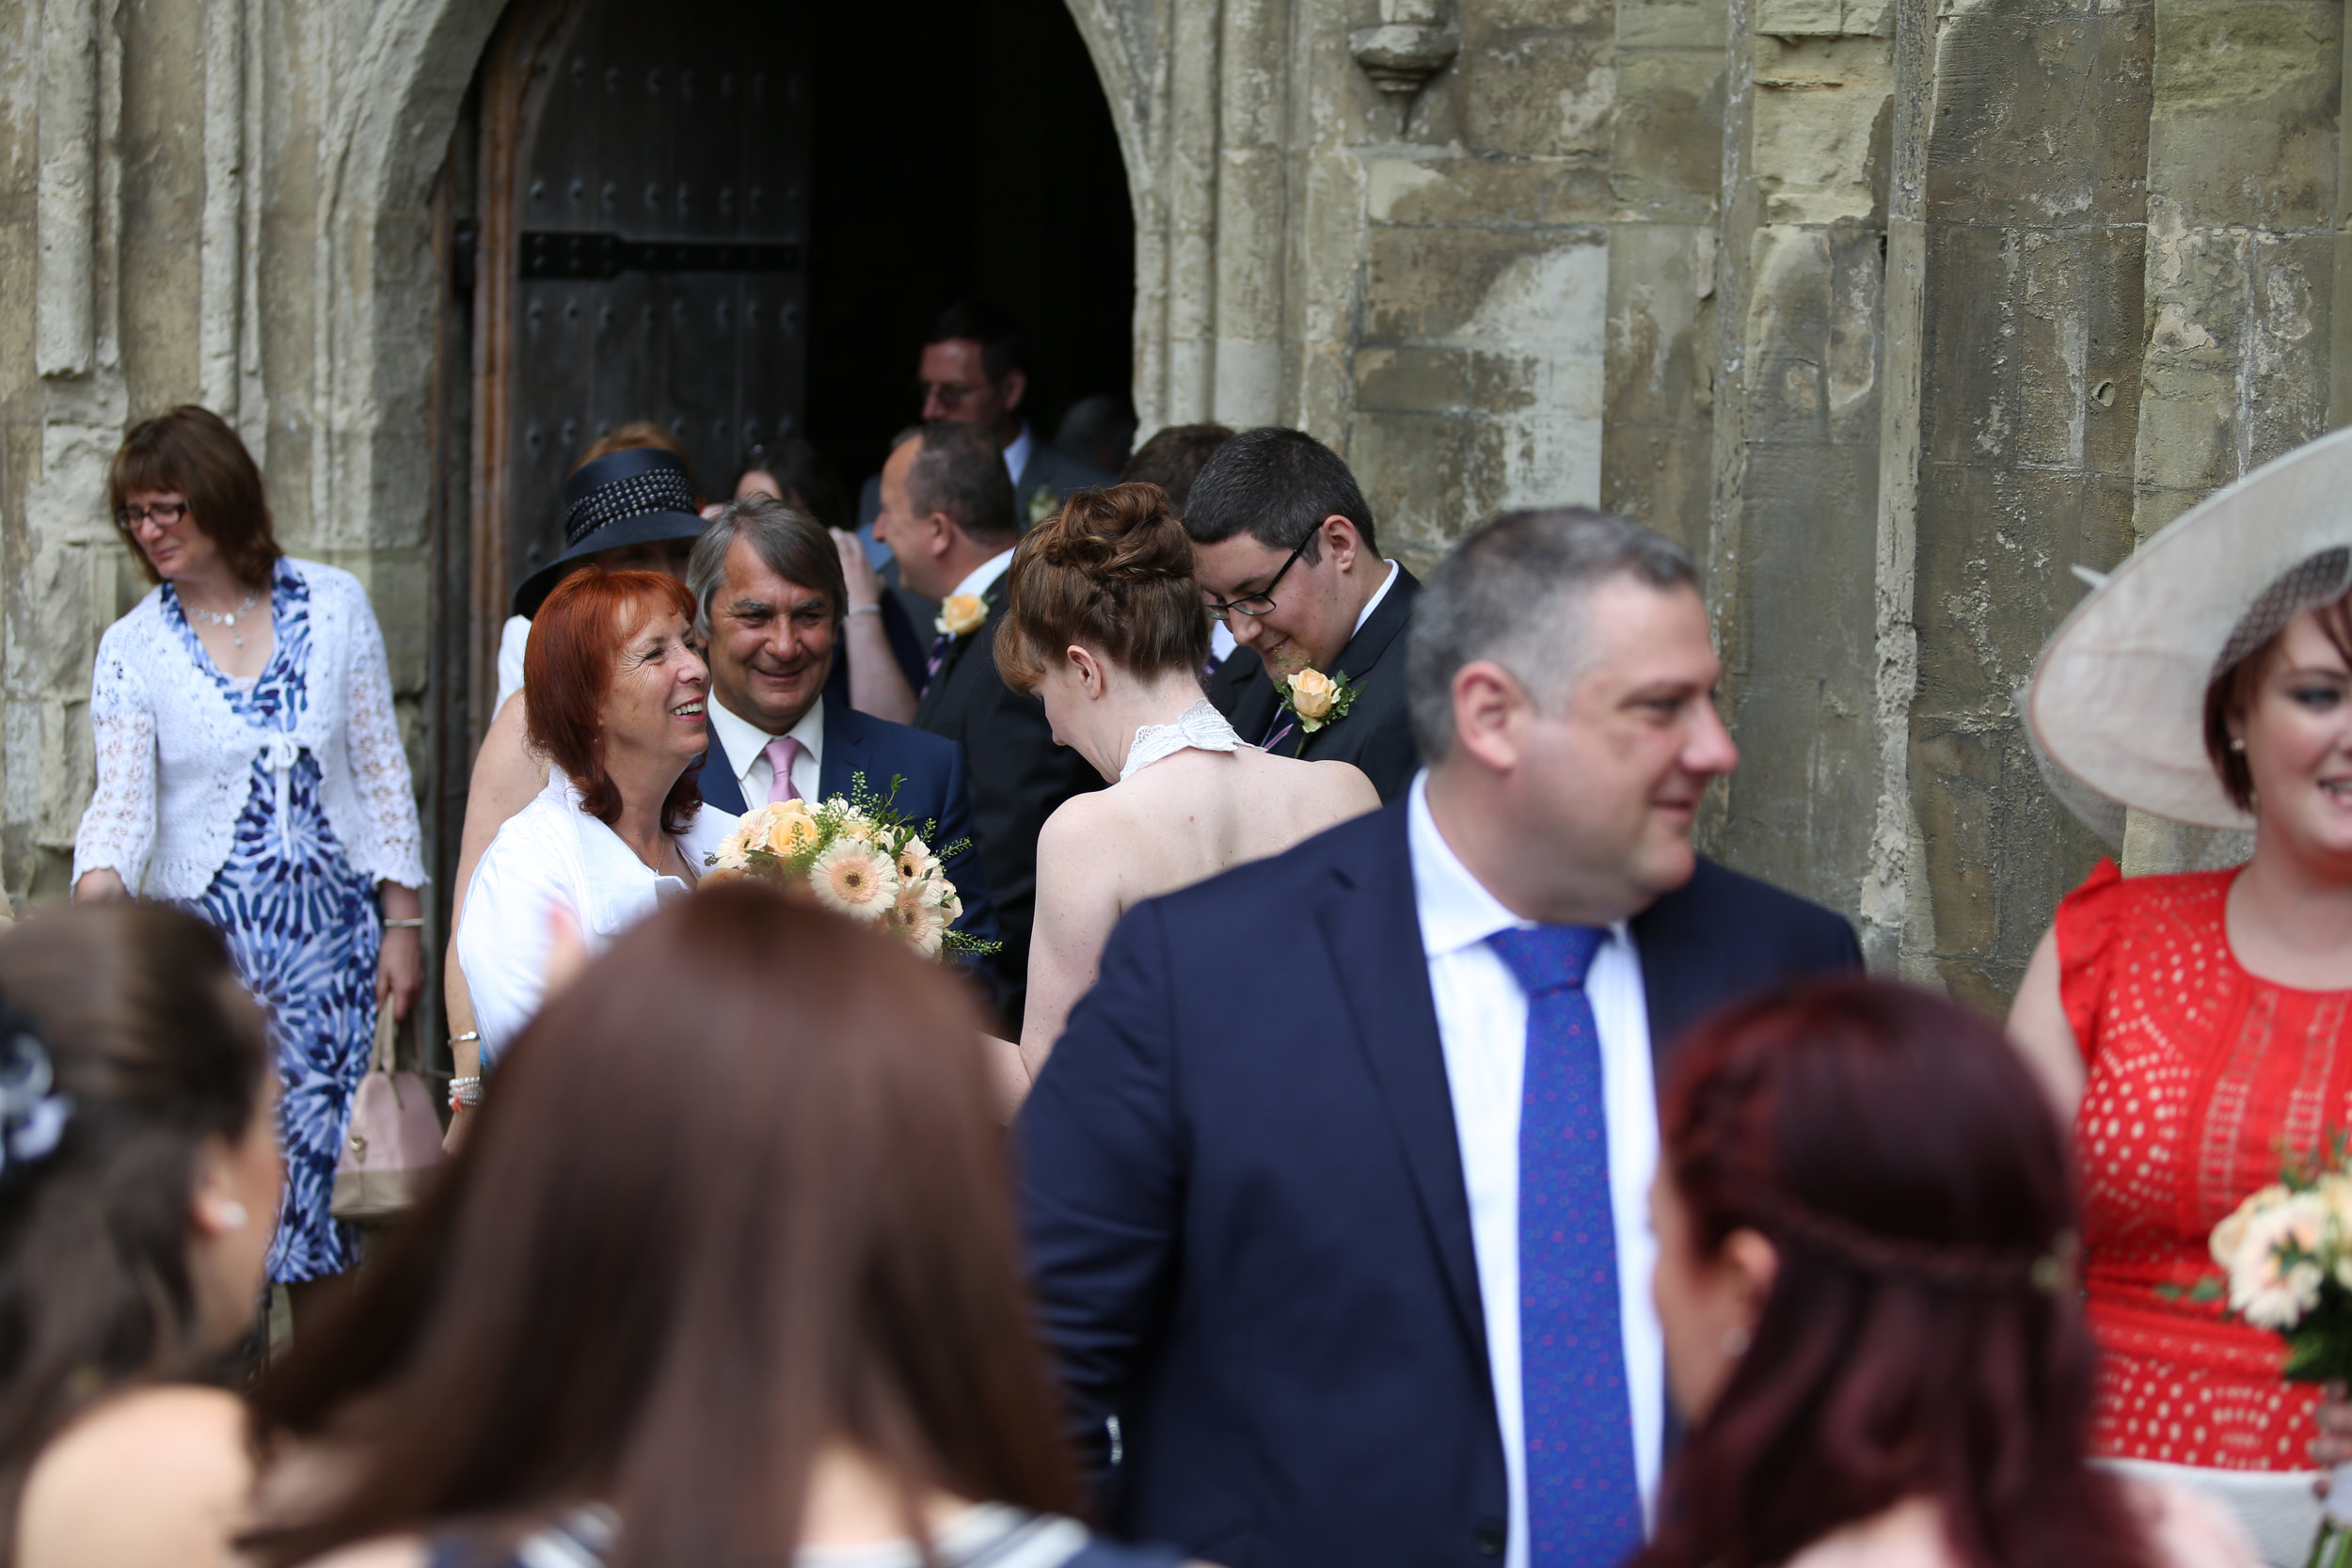 JELLYFISH WEDDING PHOTOGRAPHY THE PRIORY ST PETER CHURCH DUNSTABLE (30).jpg